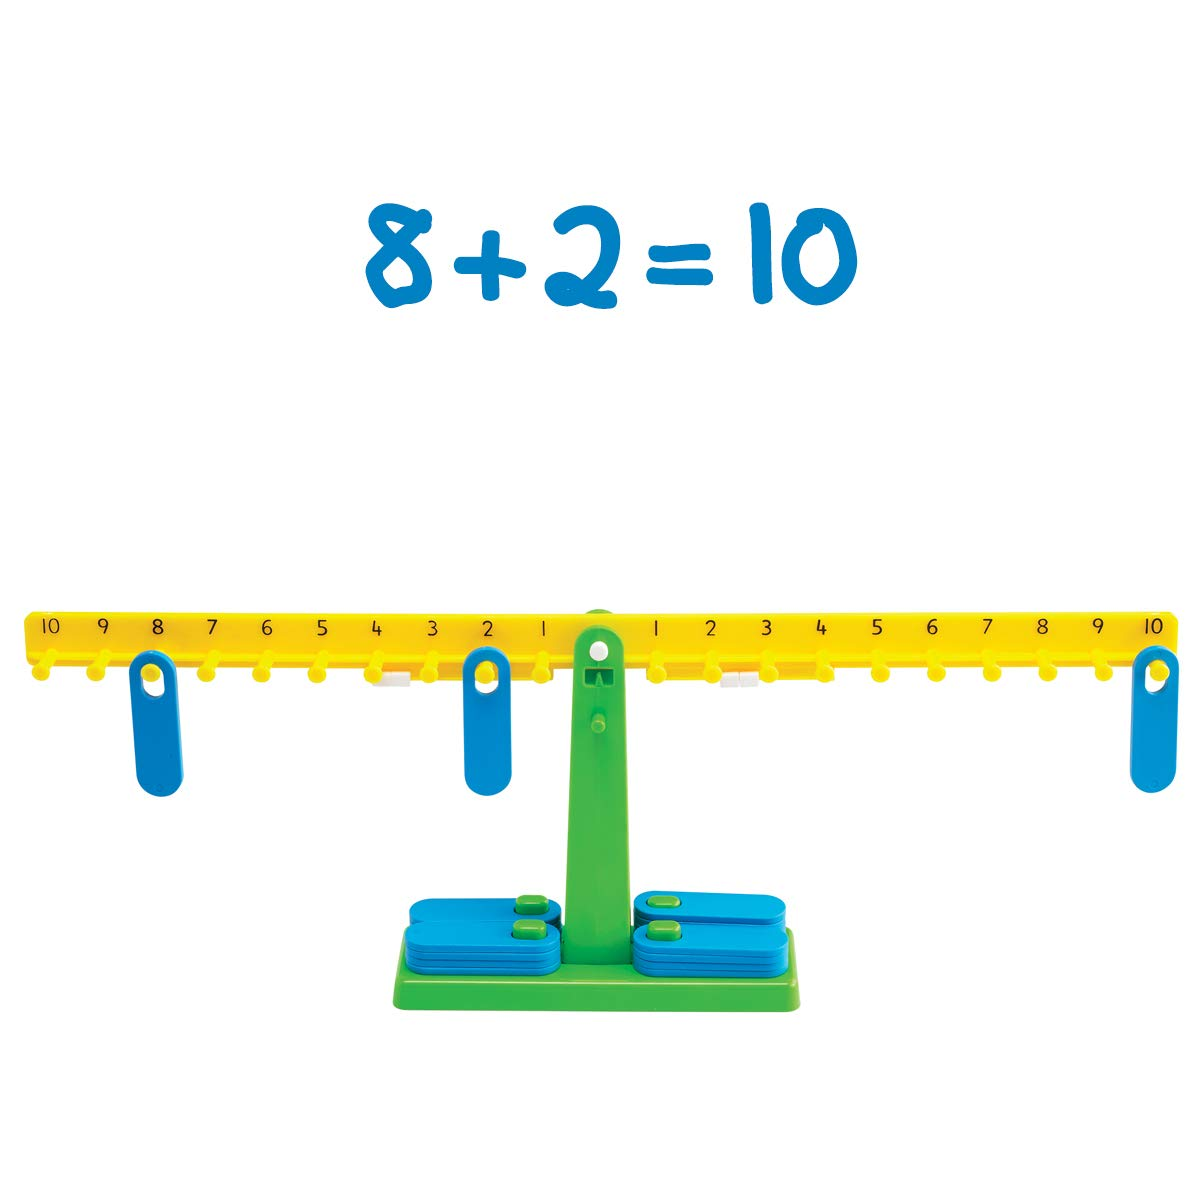 Edx Education Student Math Balance - Includes 20 Weights - Teach Early Math and Number Concepts - Beginner Addition, Subtraction and Equations